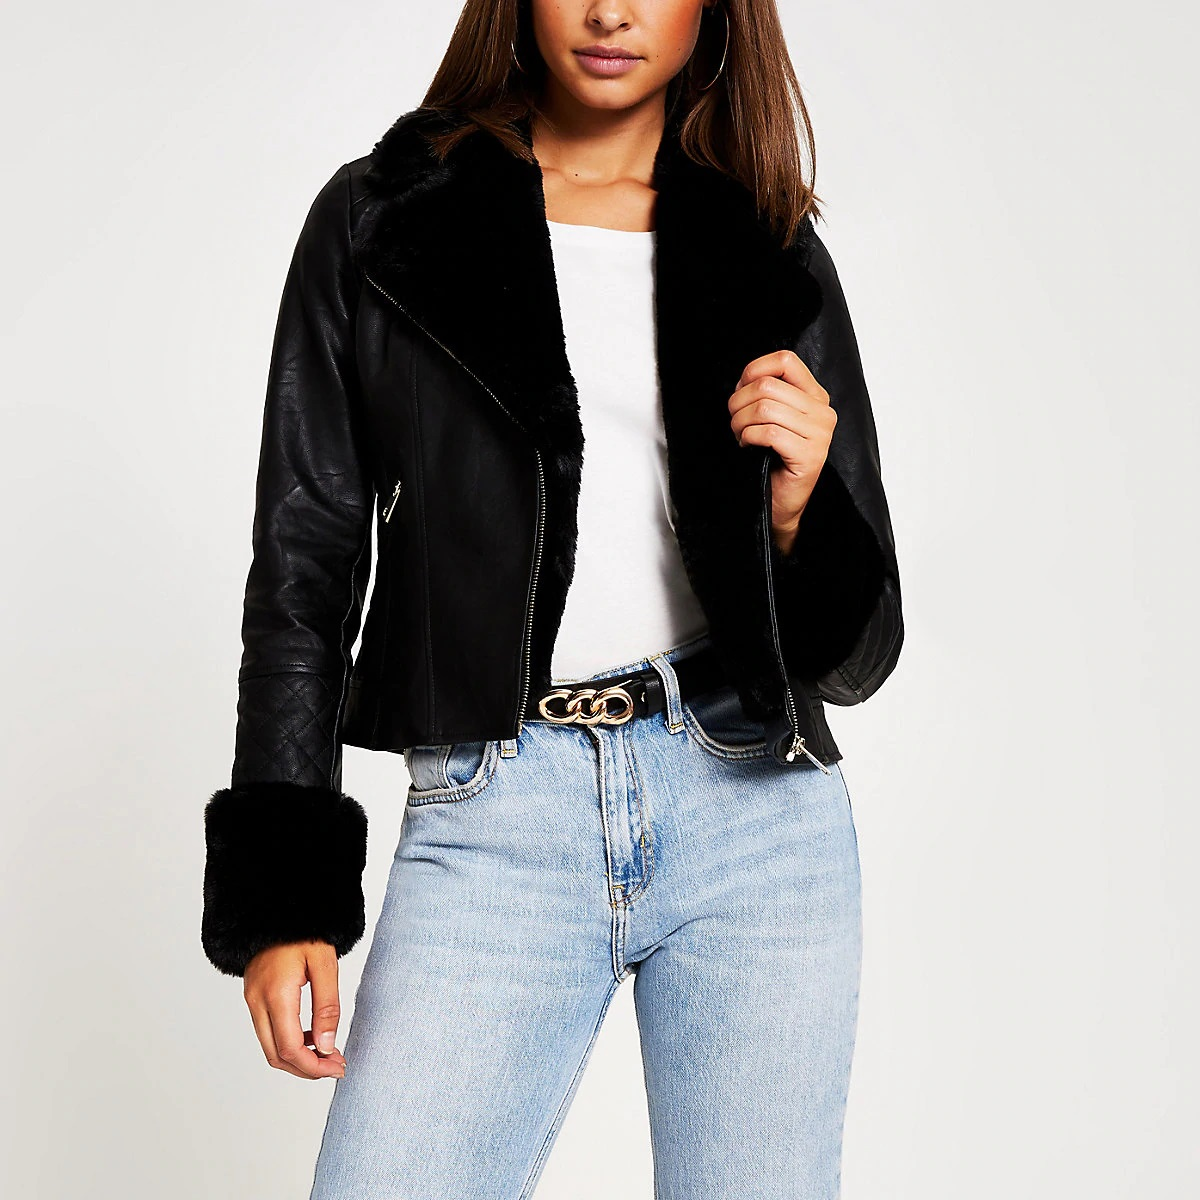 https://www.riverisland.com/p/black-faux-fur-collar-quilted-biker-jacket-799880